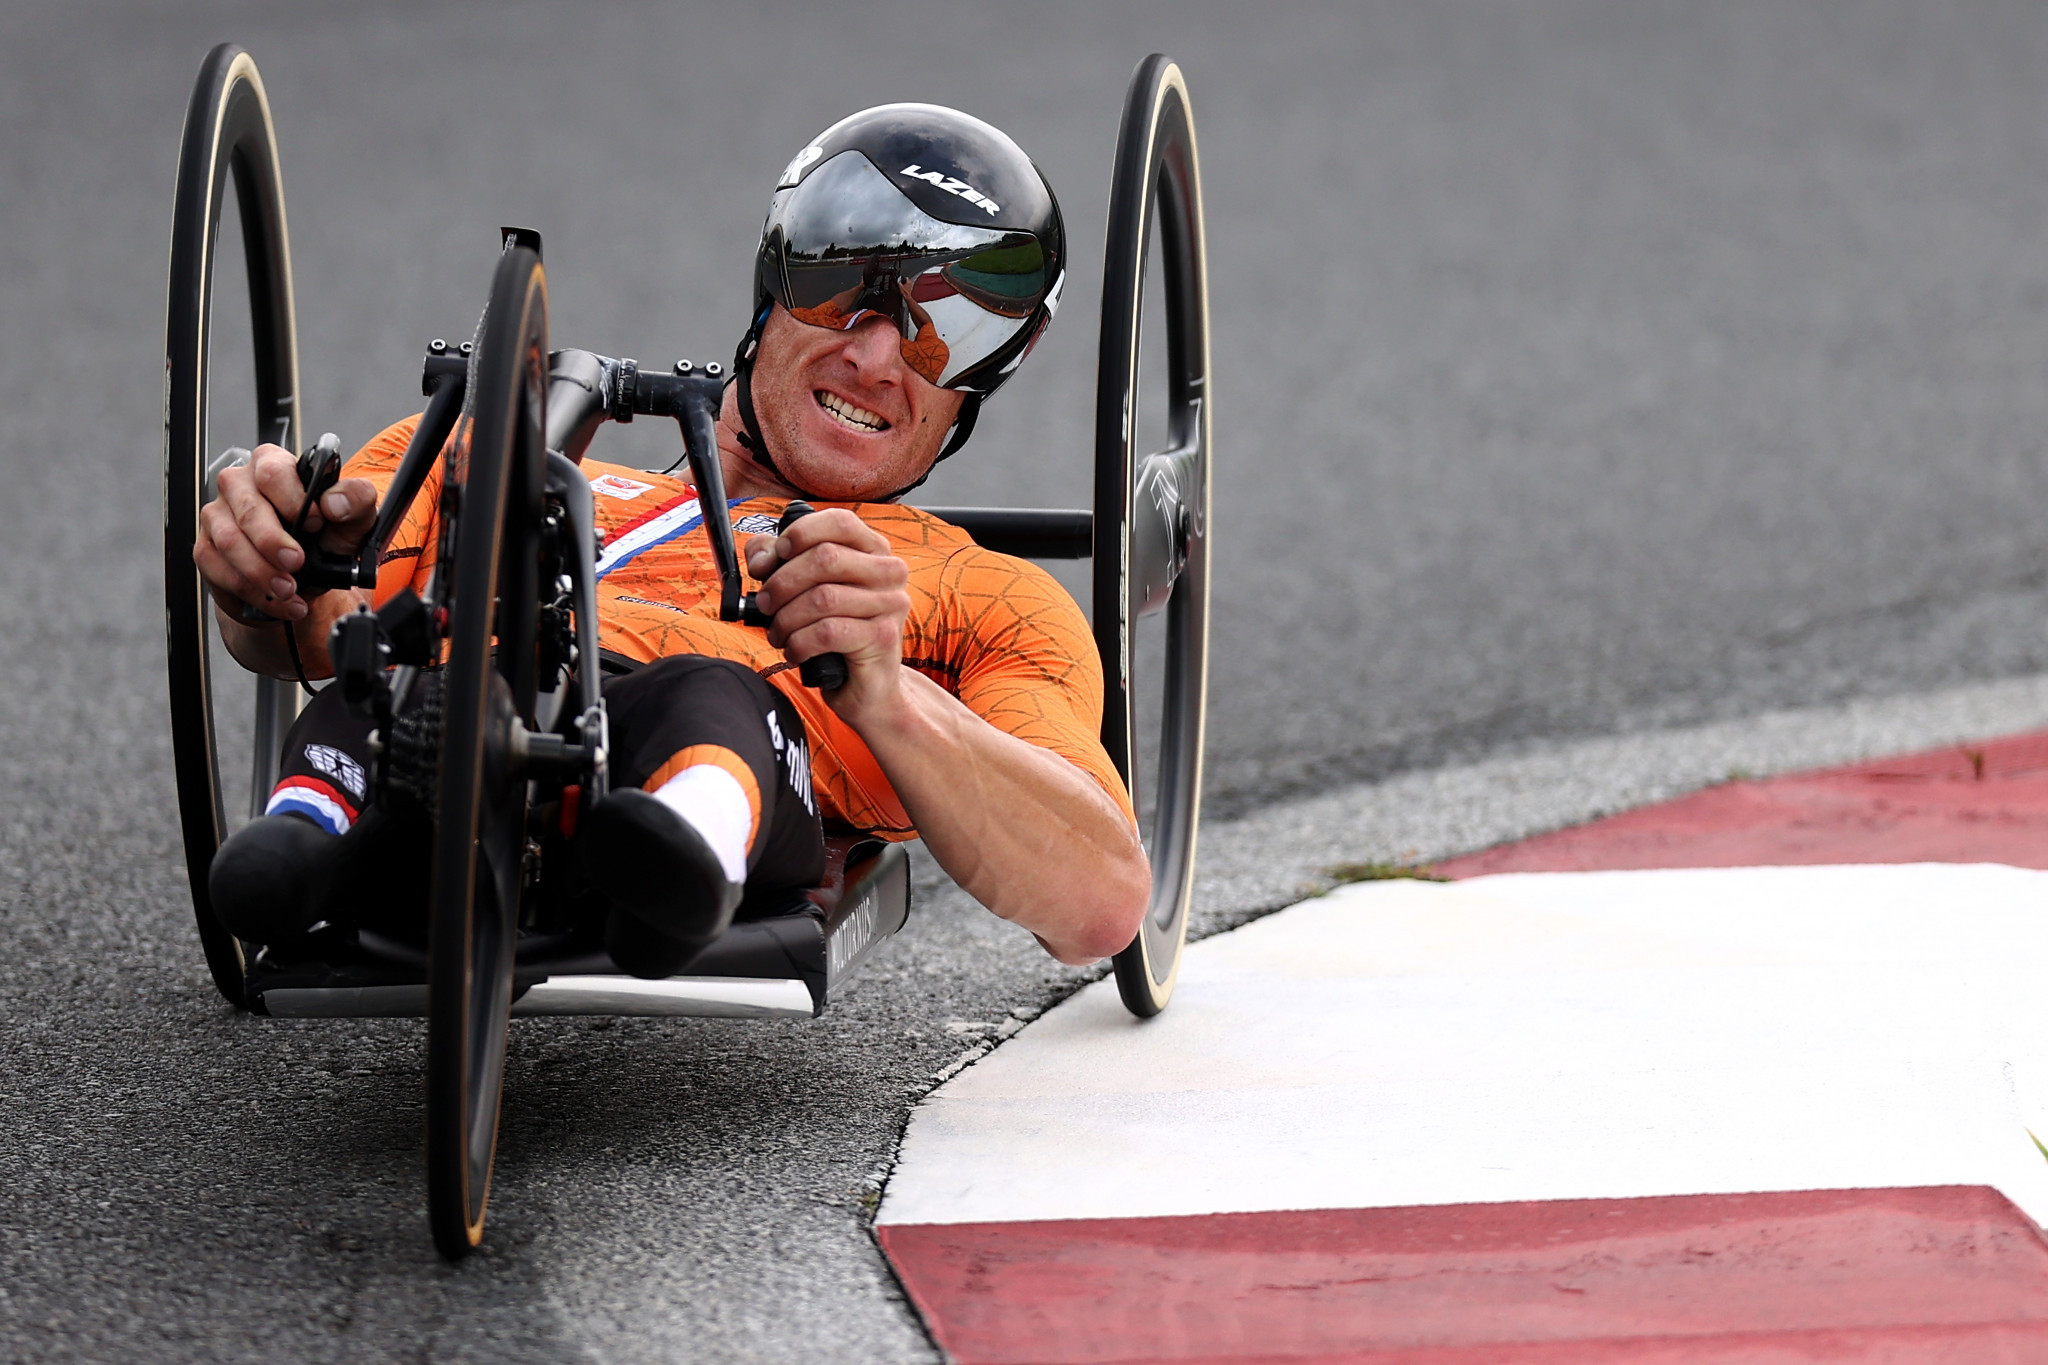 Netherlands celebrate three golds on first day of road races at Paralympics